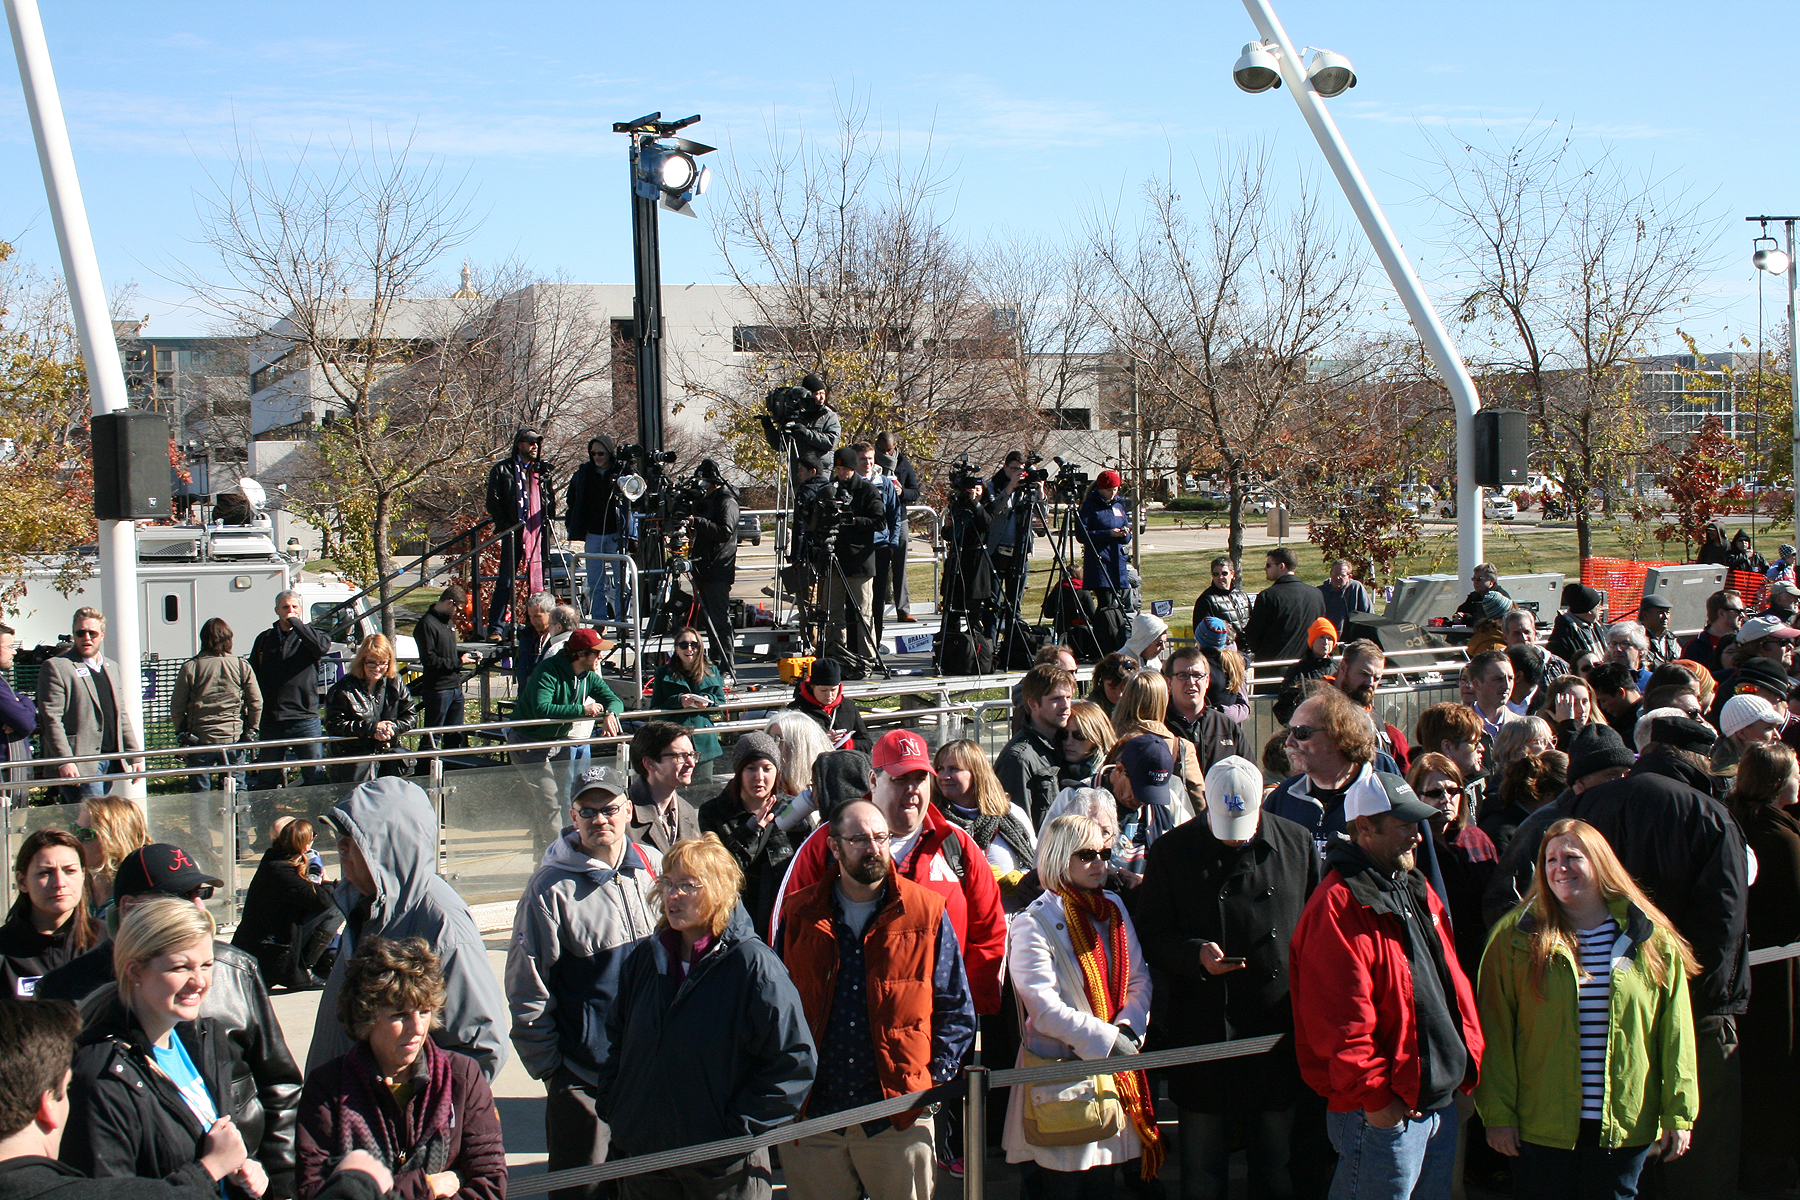 Spectators in front of Two Tiered Press Riser